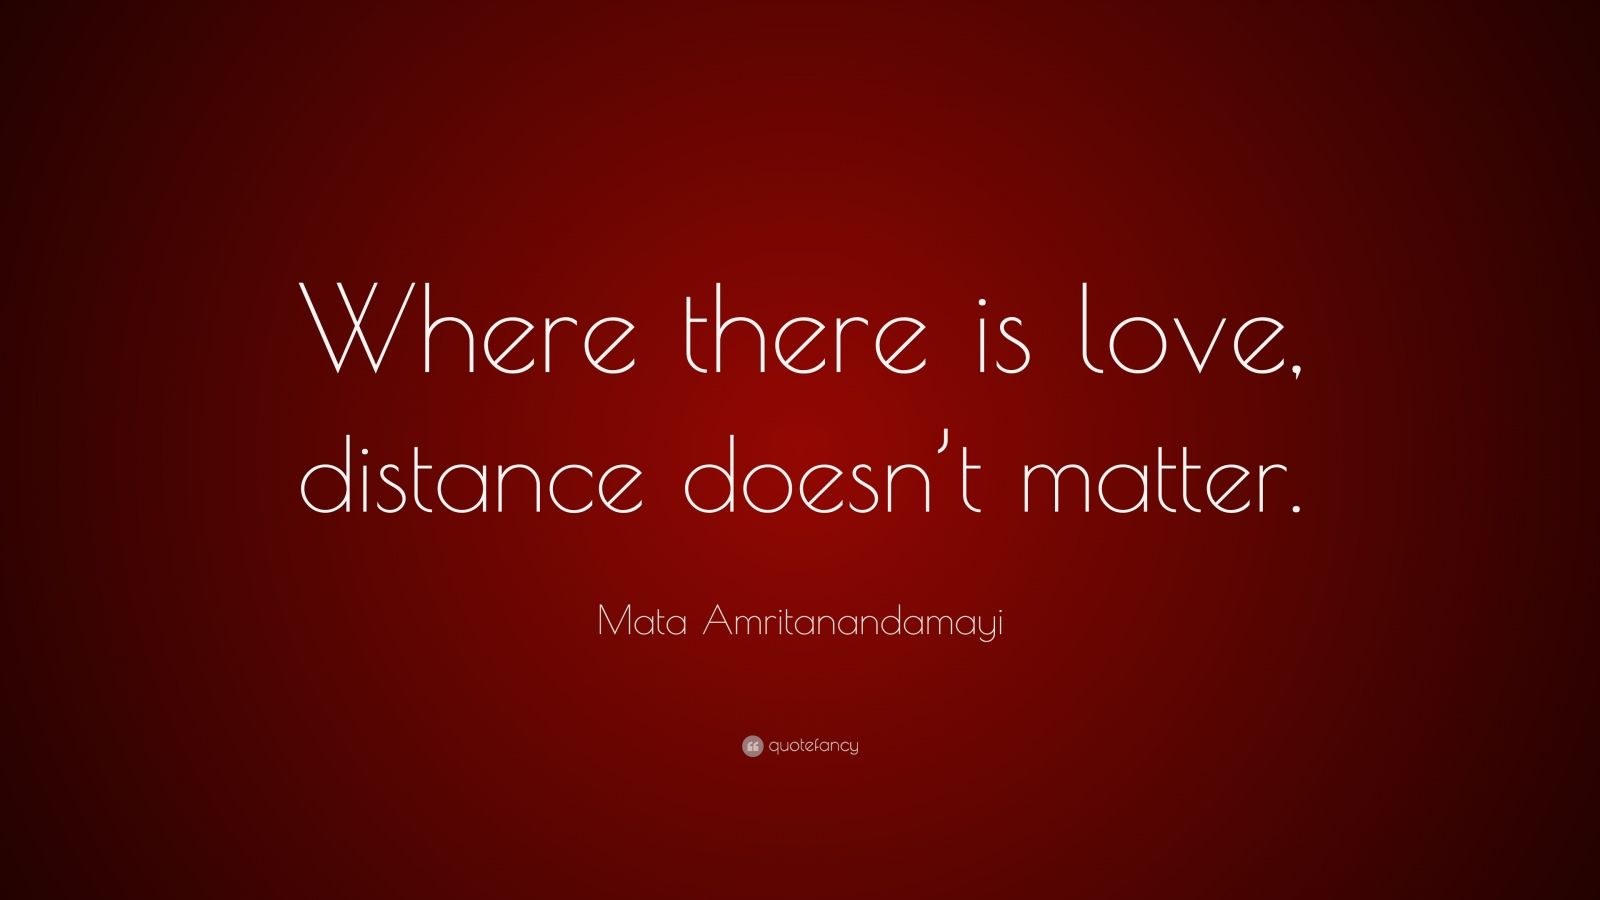 Love Wallpapers Matter : Mata Amritanandamayi Quote: ?Where there is love, distance doesn t matter.? (9 wallpapers ...